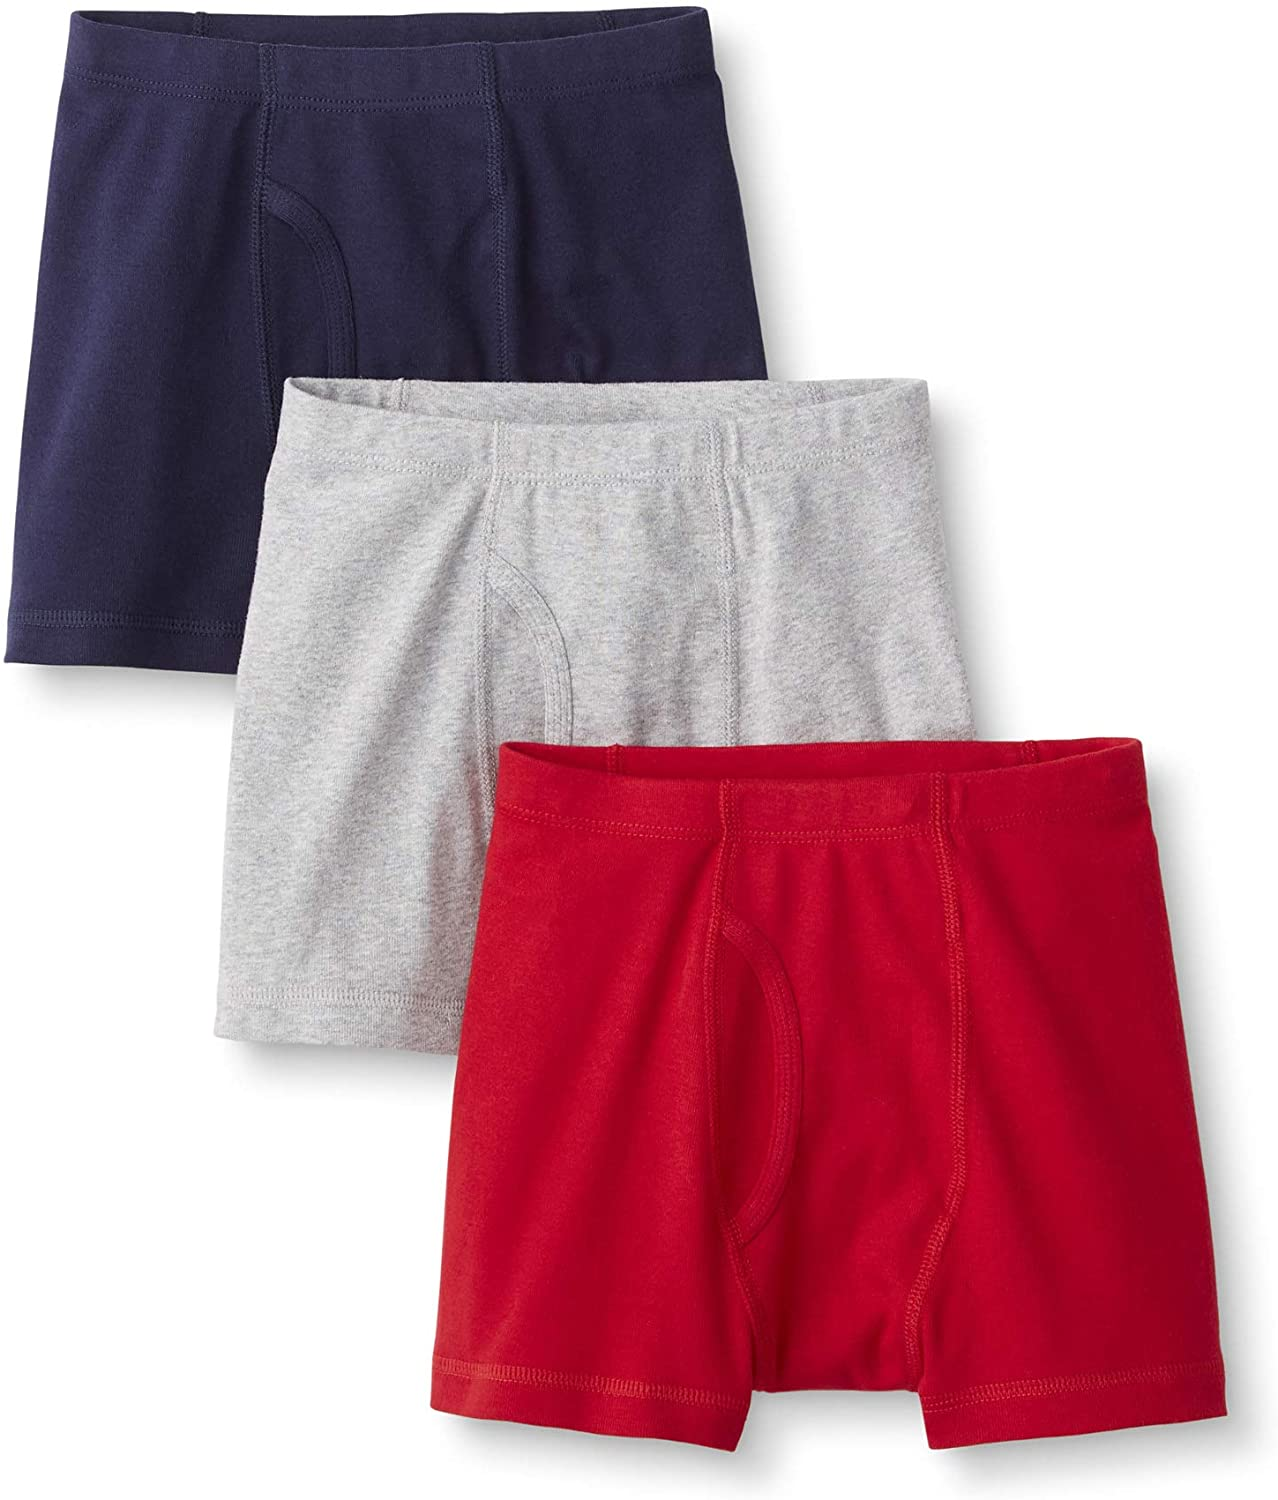 Hanna Andersson Boys Boxer Briefs in Organic Cotton, 3-Pack